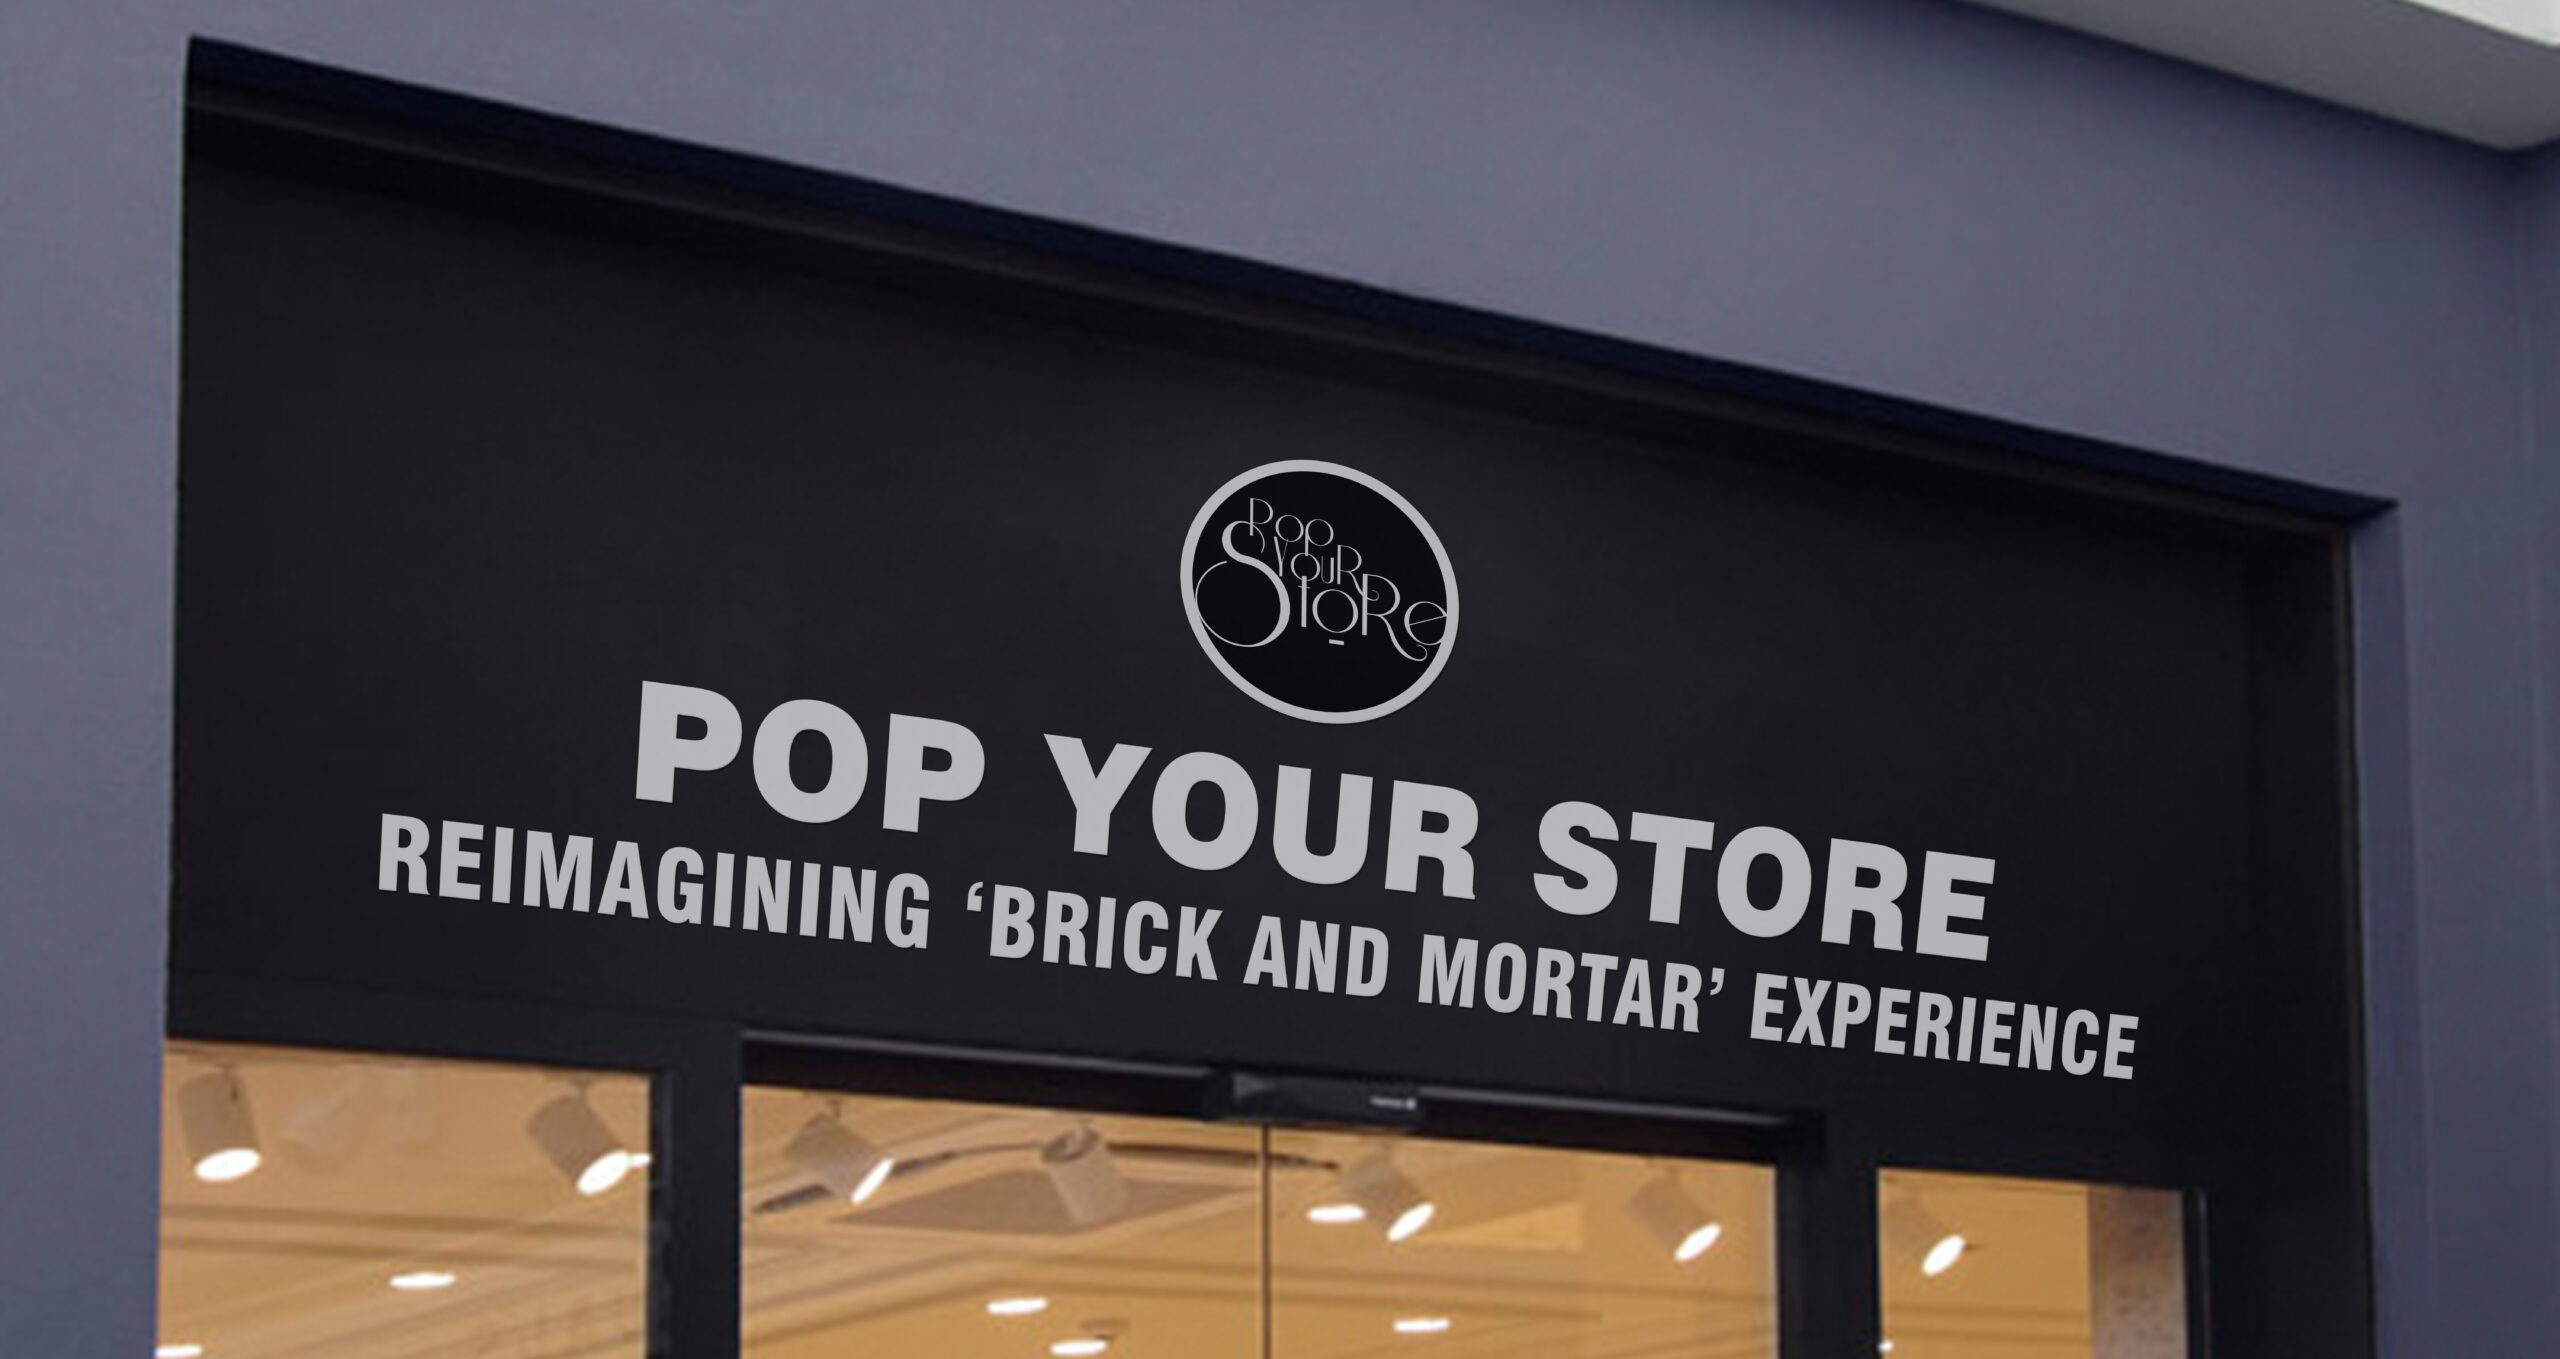 Pop Your Store     Reimagining                     'Brick and Mortar' experience